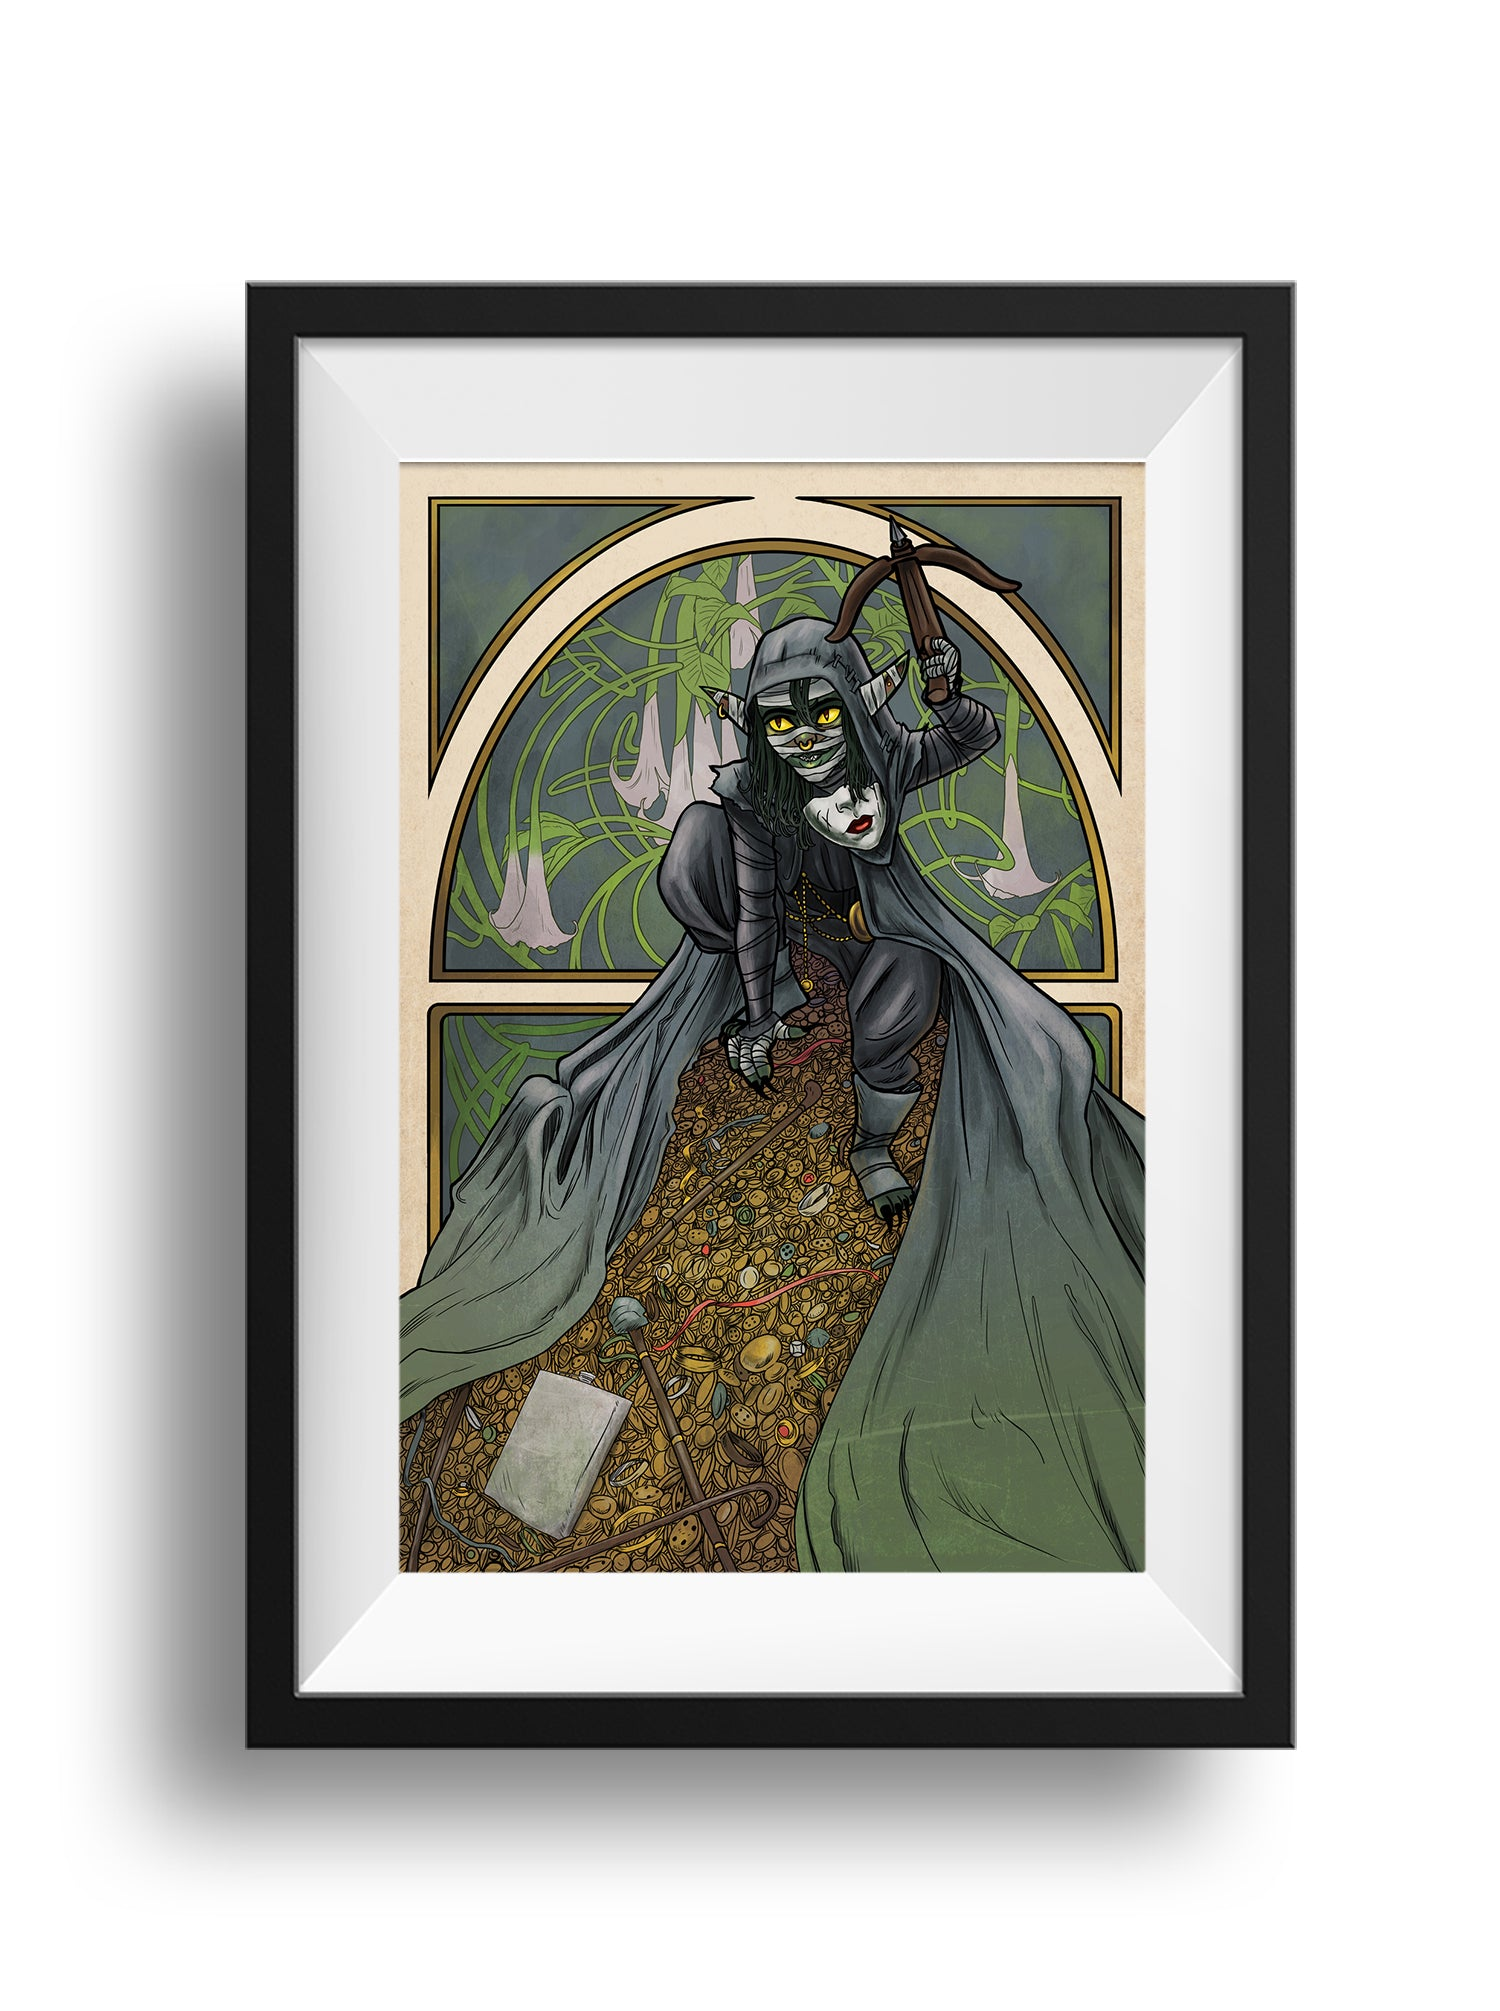 Critical Role - Sugar and Spice and Shinies - Nott the Brave Print